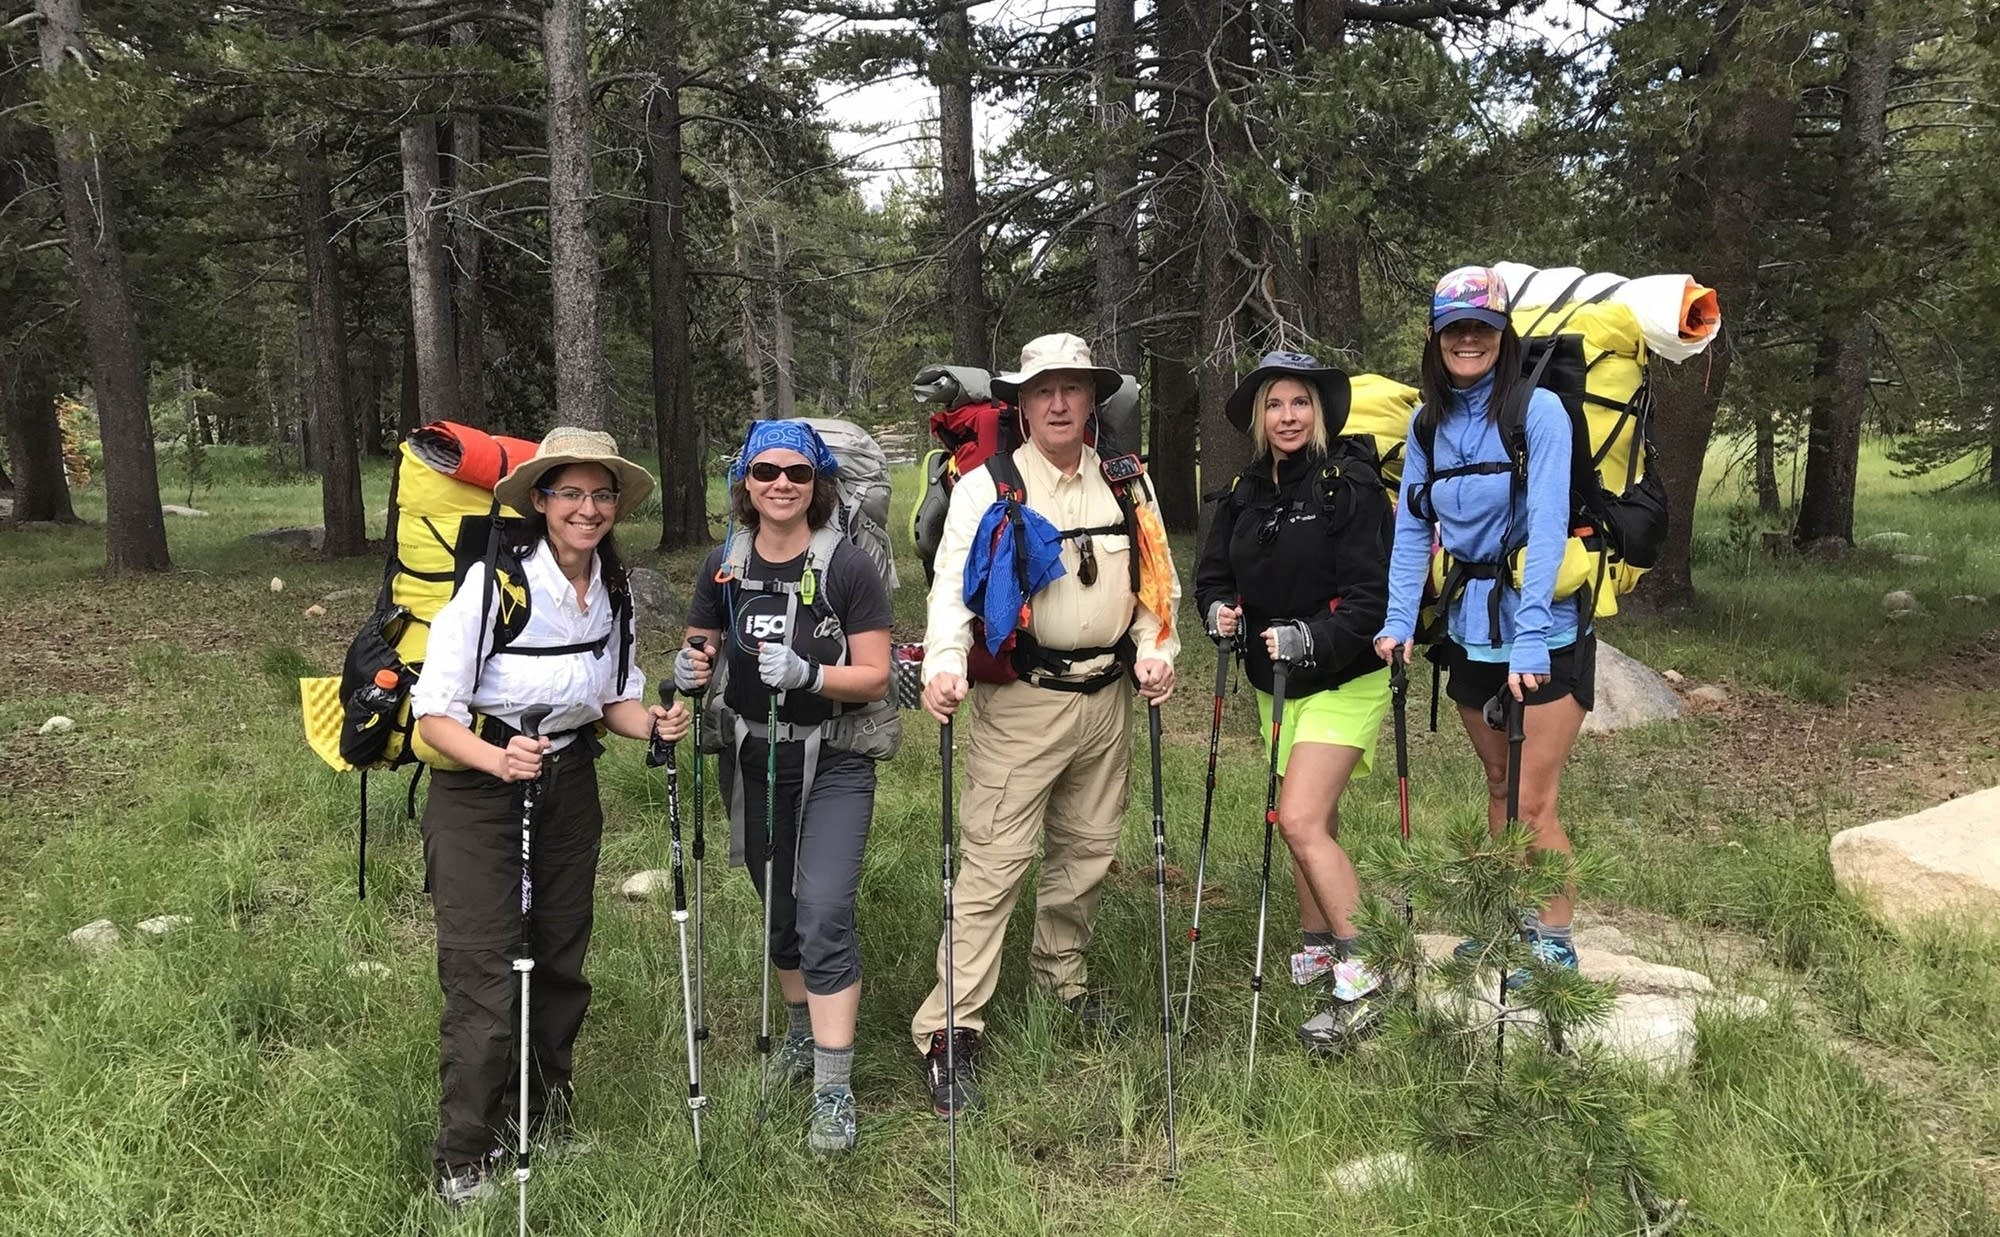 Hikers ready to head out on the Pacific Crest Trail